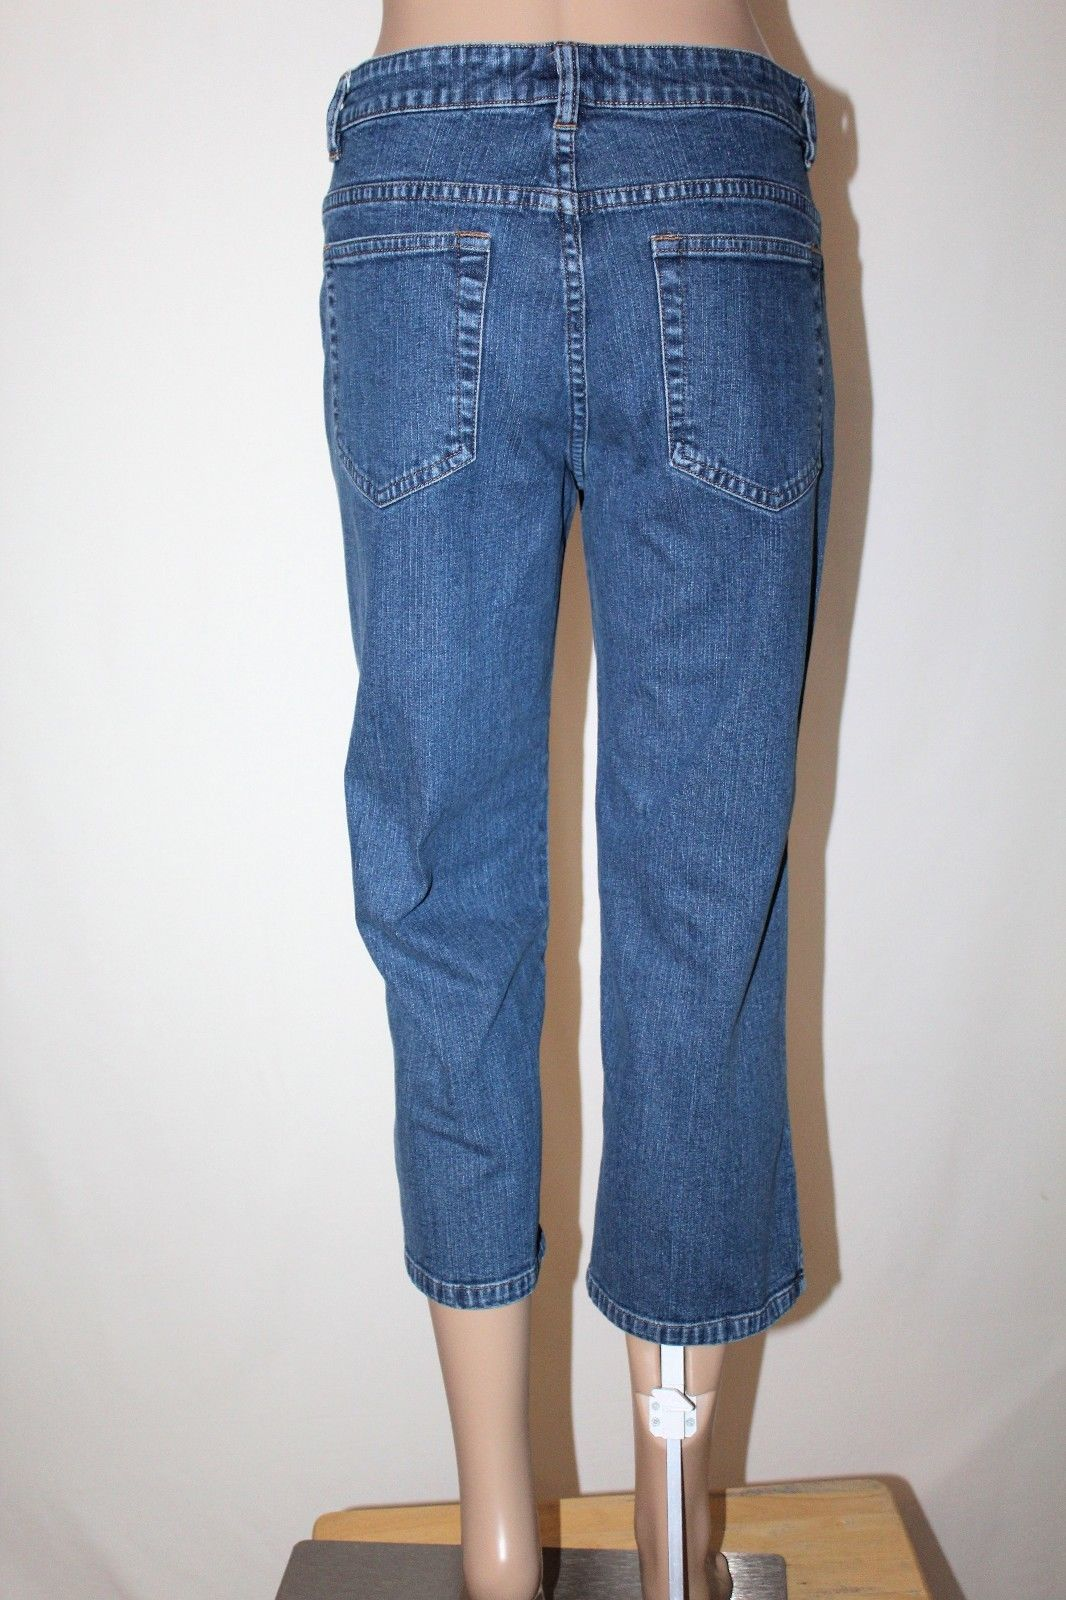 2bffbb91fed S l1600. S l1600. Previous. LEE RIVETED Ultimate 5 Women s Size 8 M Capri  Cropped Stretch Jeans 22